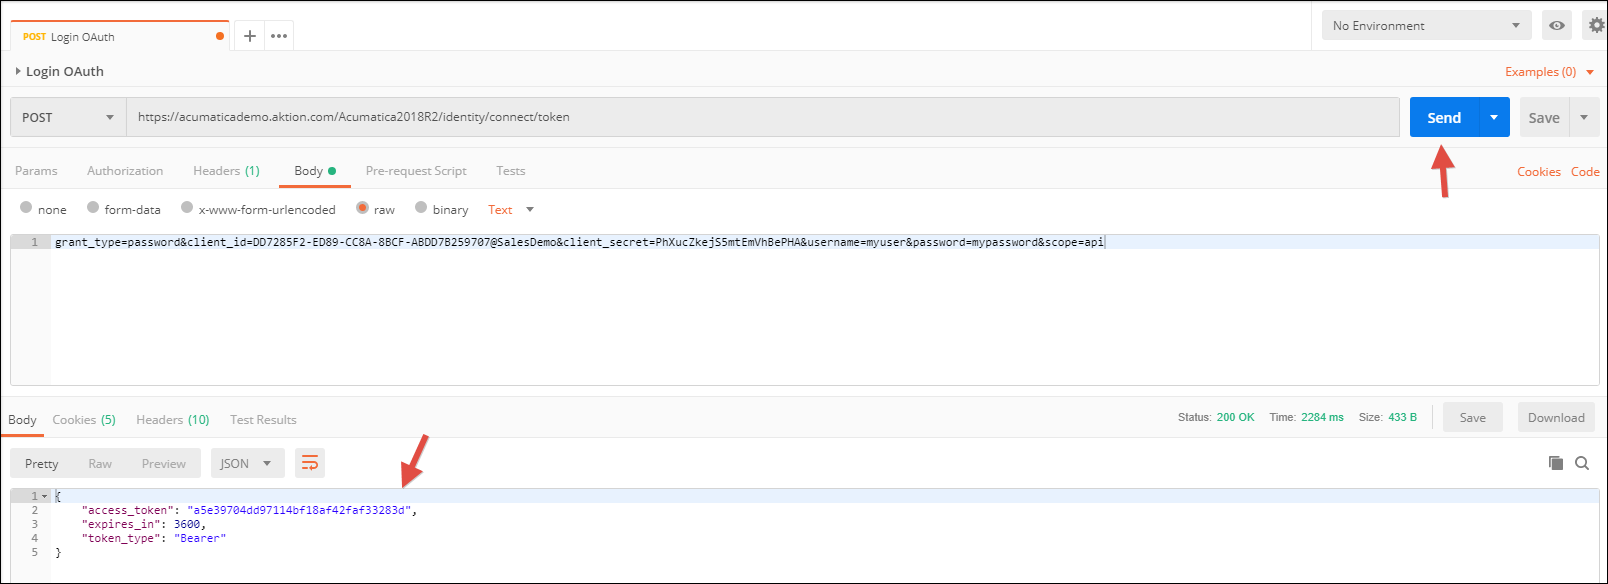 OAuth Authentication in Acumatica